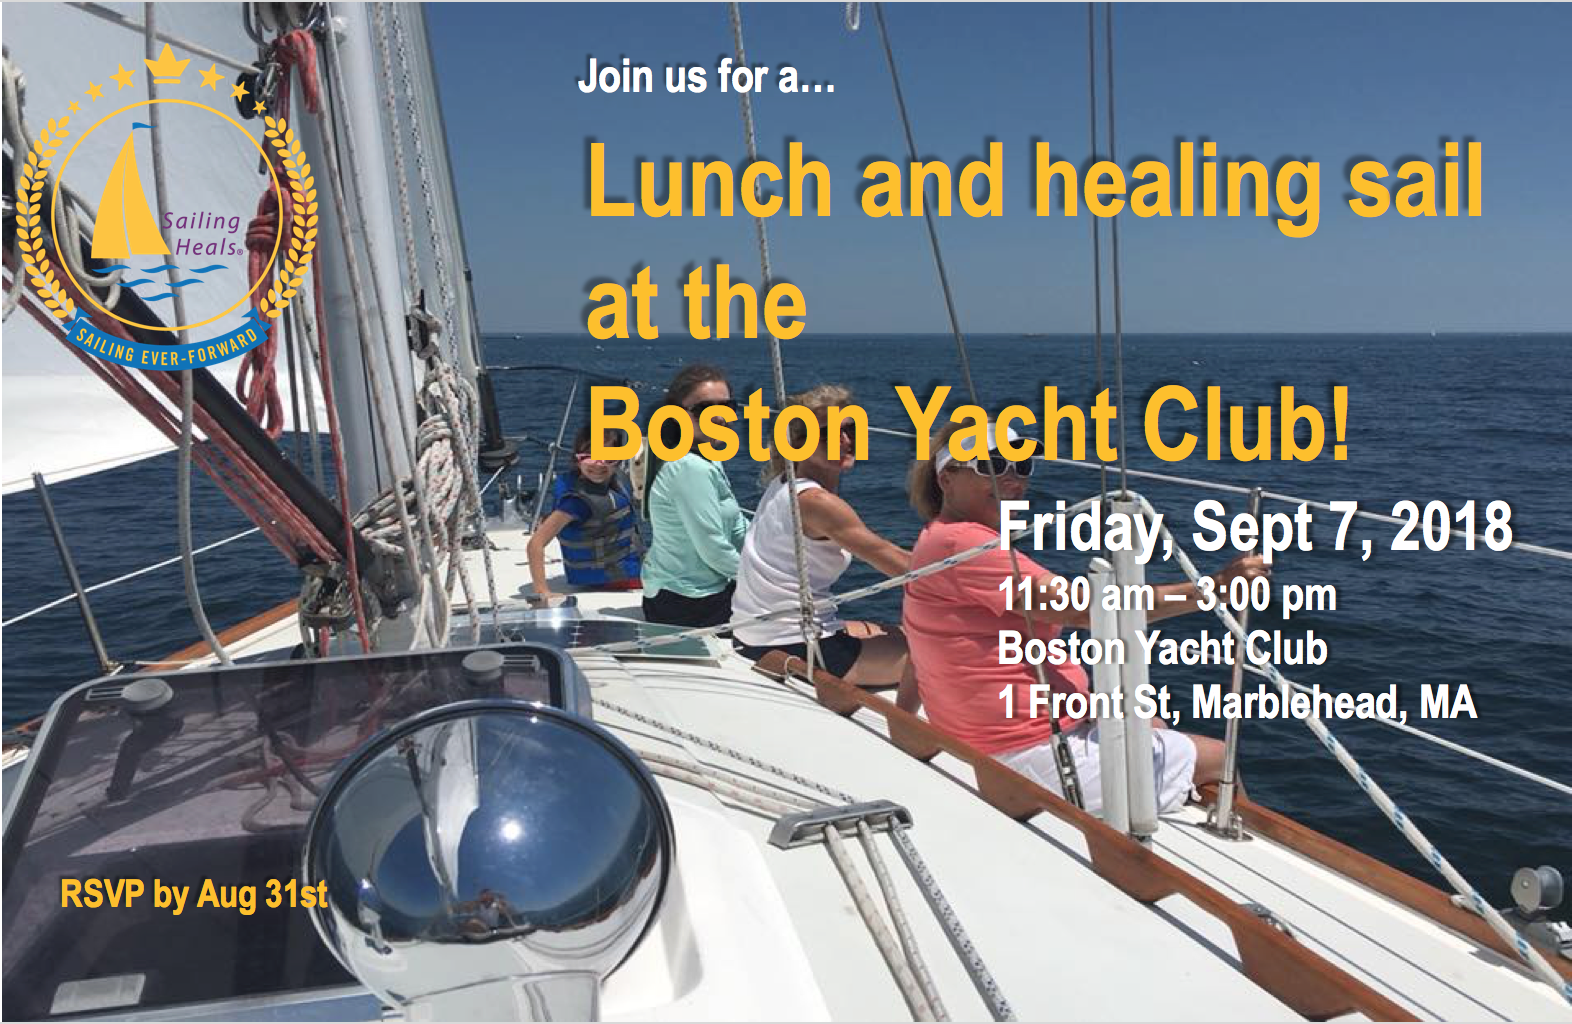 9/7/18 Boston Yacht Club Healing Sail